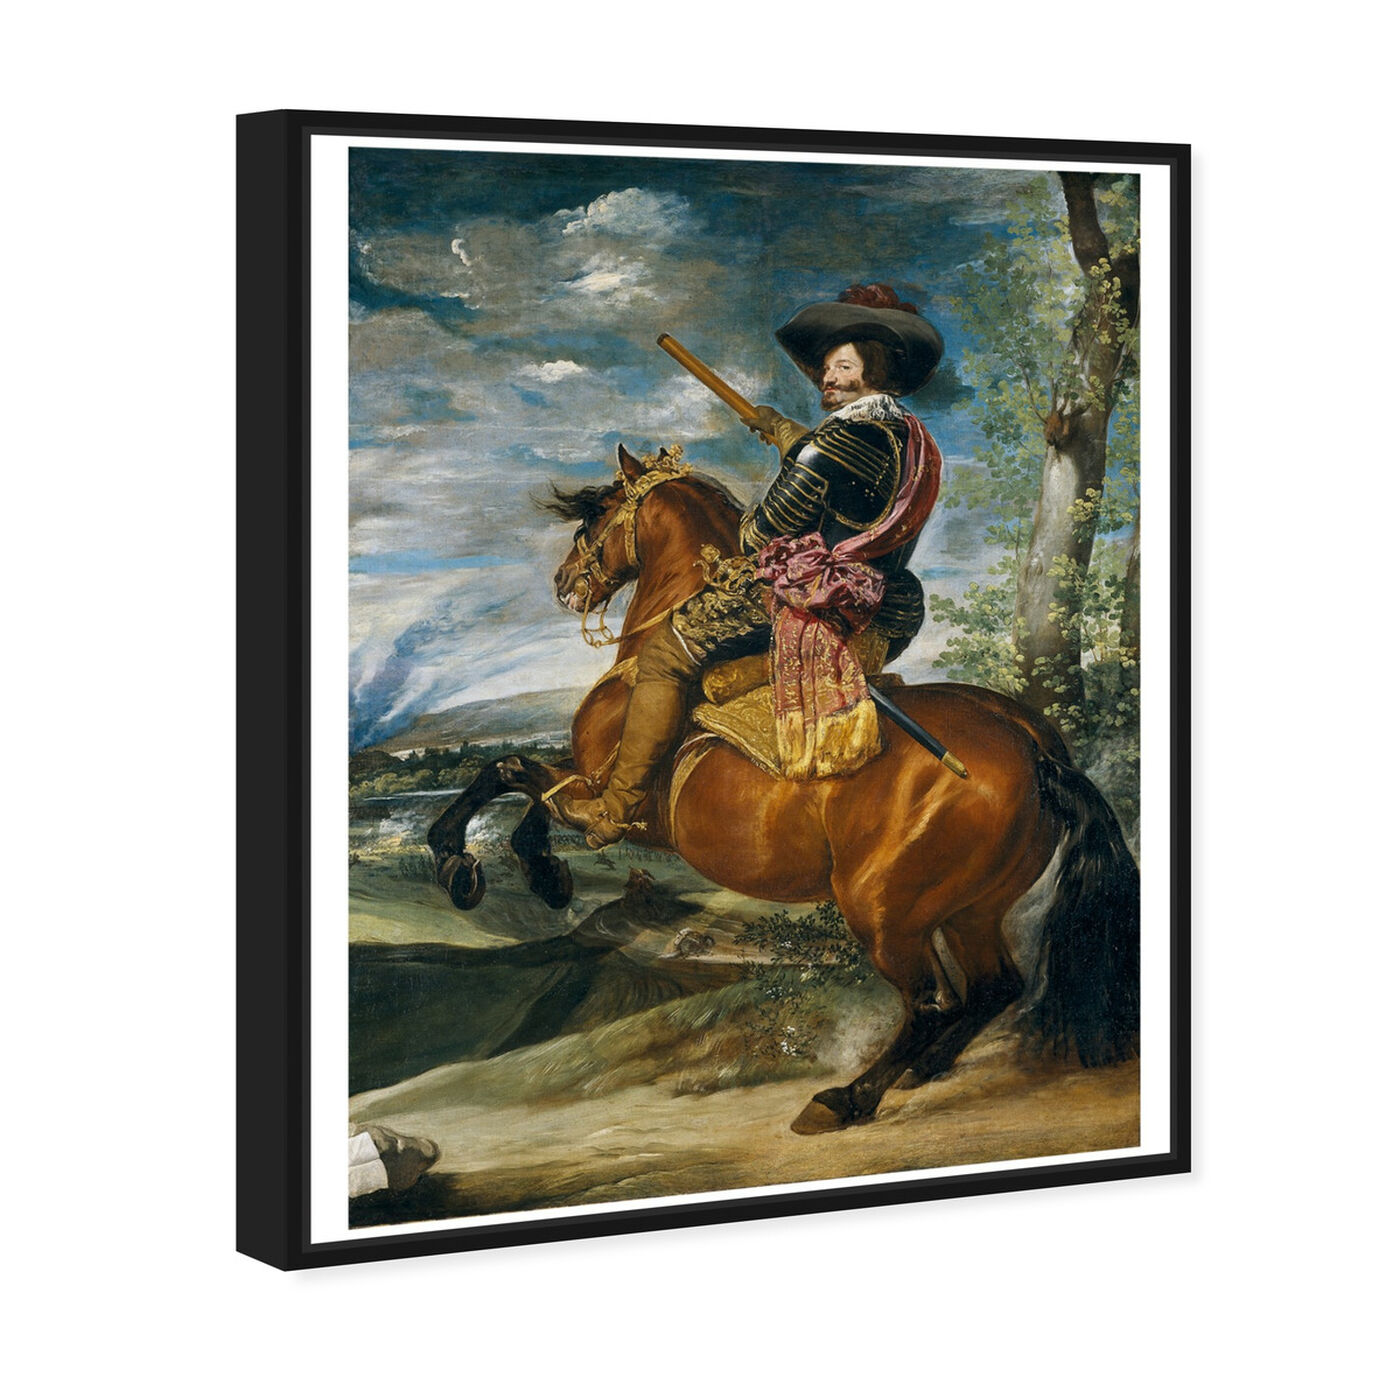 Angled view of Velazquez - Count Duke of Olivares featuring classic and figurative and renaissance art.